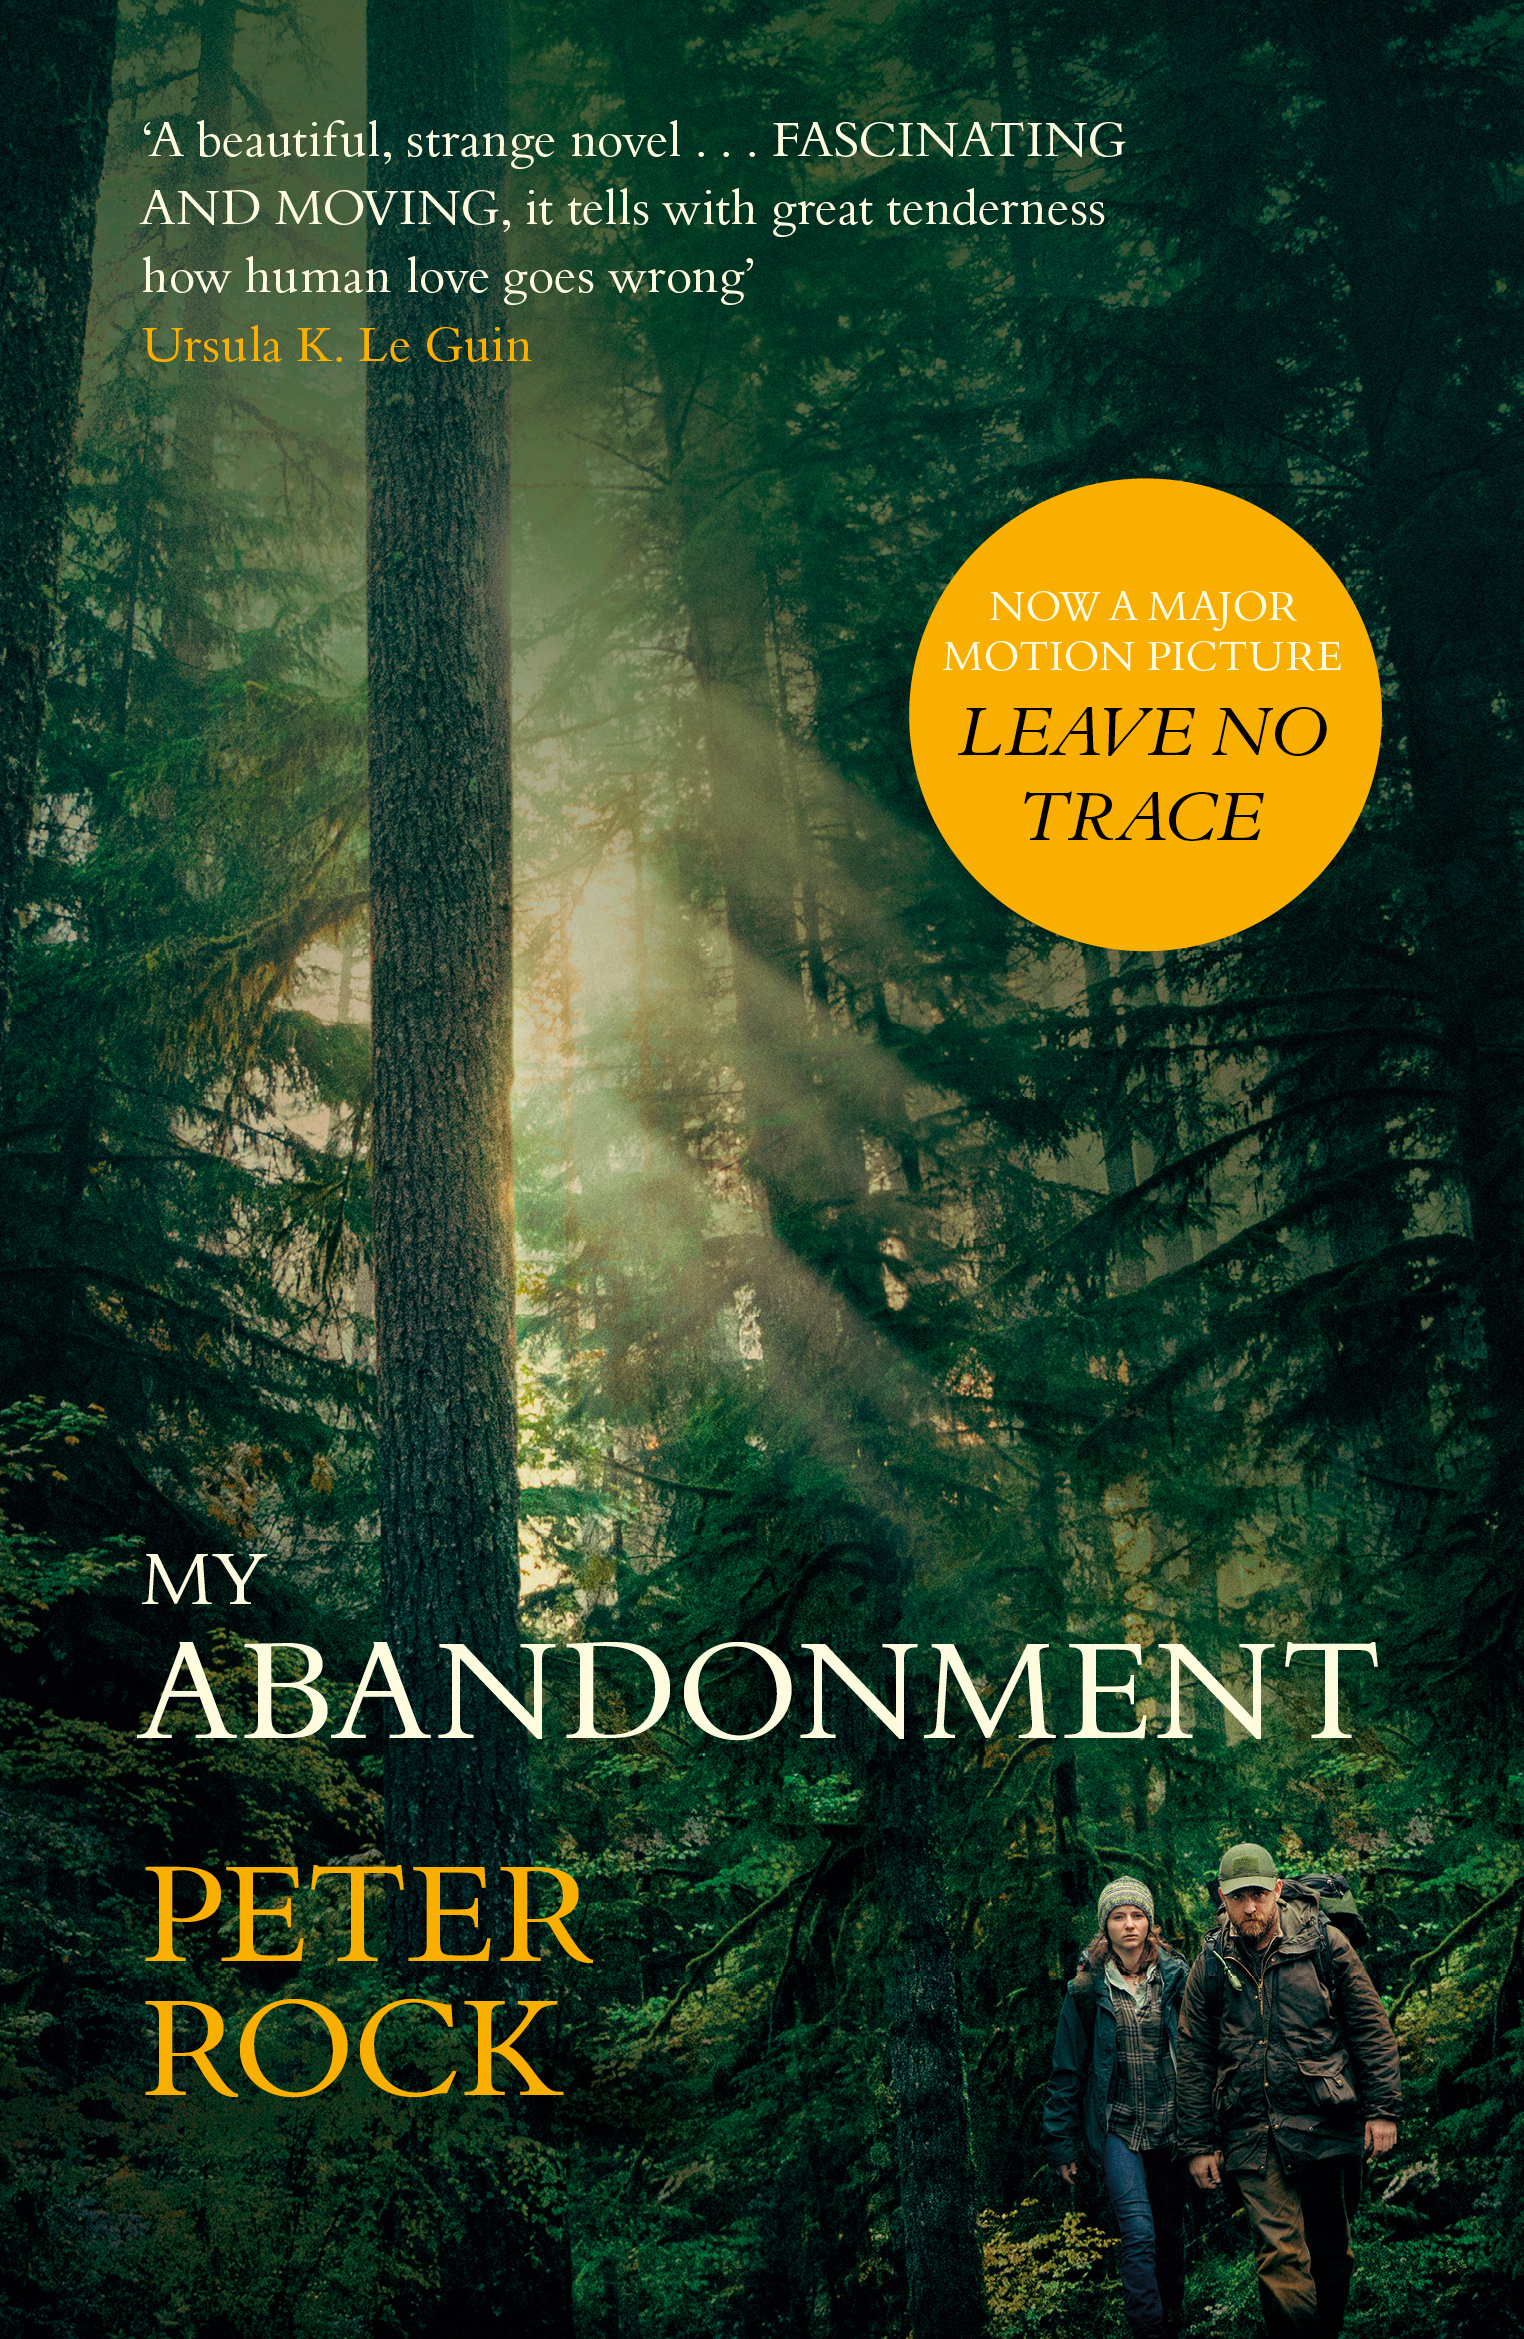 My Abandonment: Now a major movie, 'Leave No Trace'